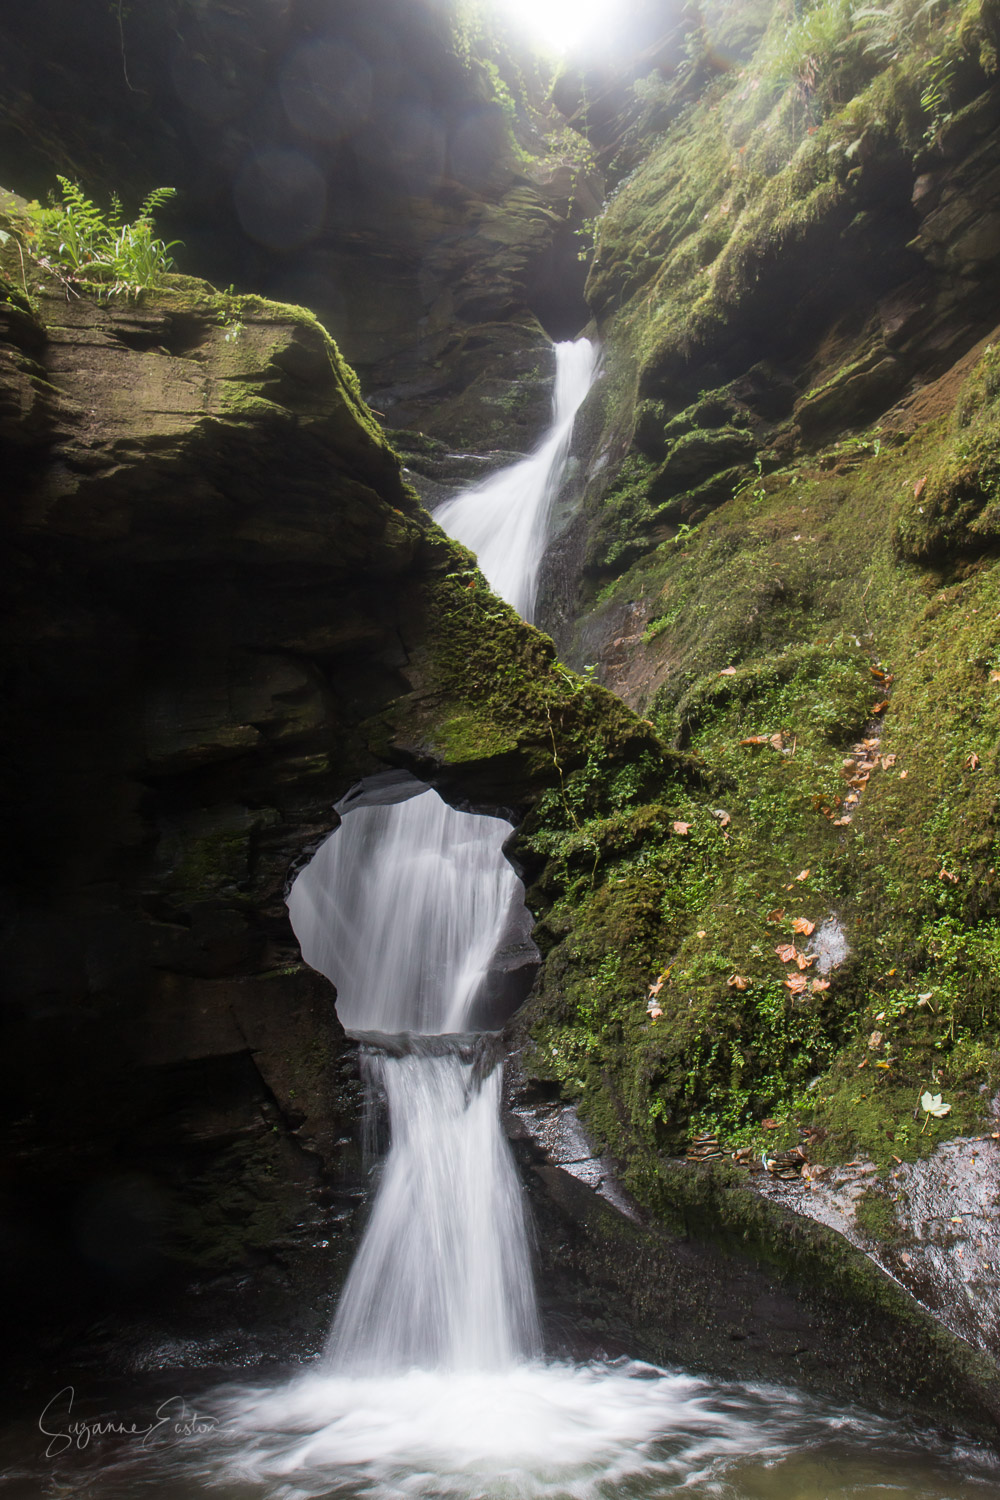 Waterfall at St Nectan's Glen